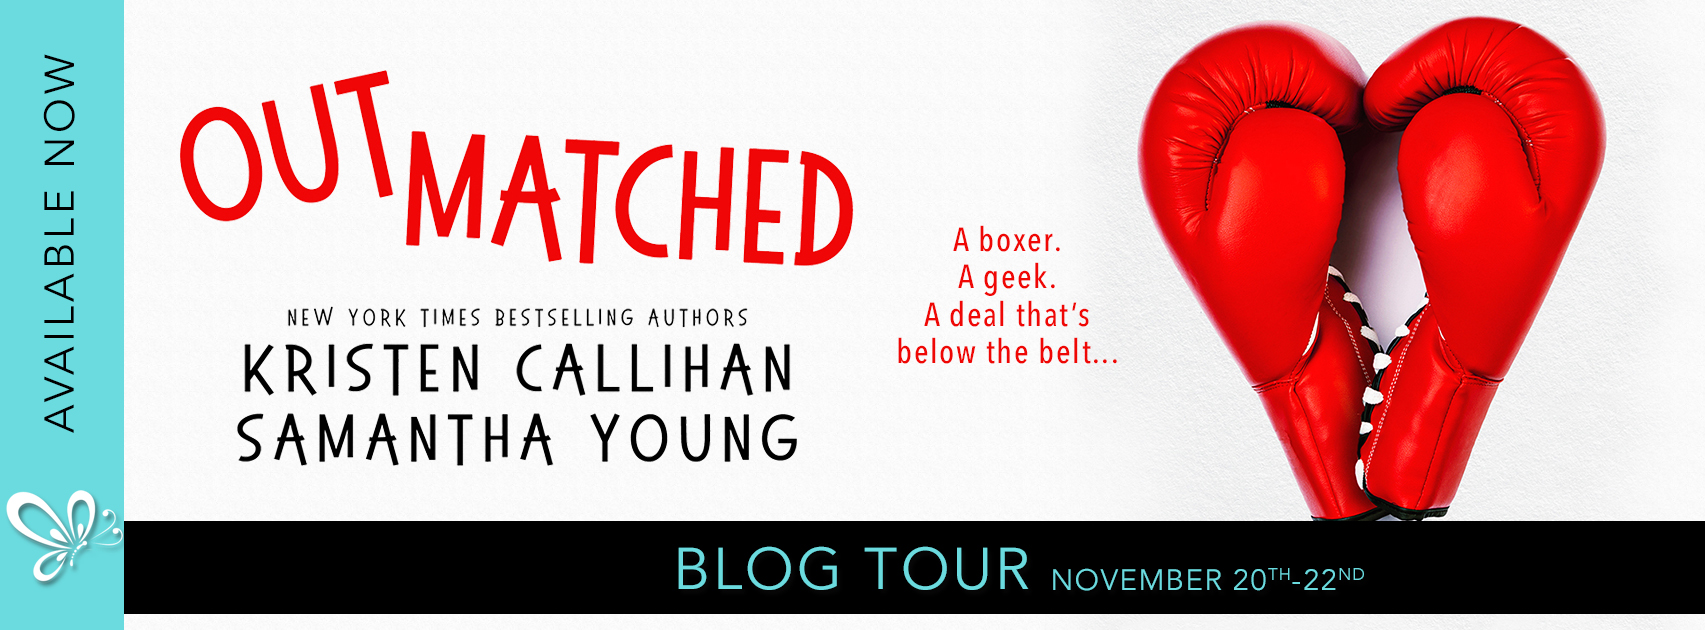 Blog Tour & Review: Outmatched by Kristen Callihan and Samantha Young